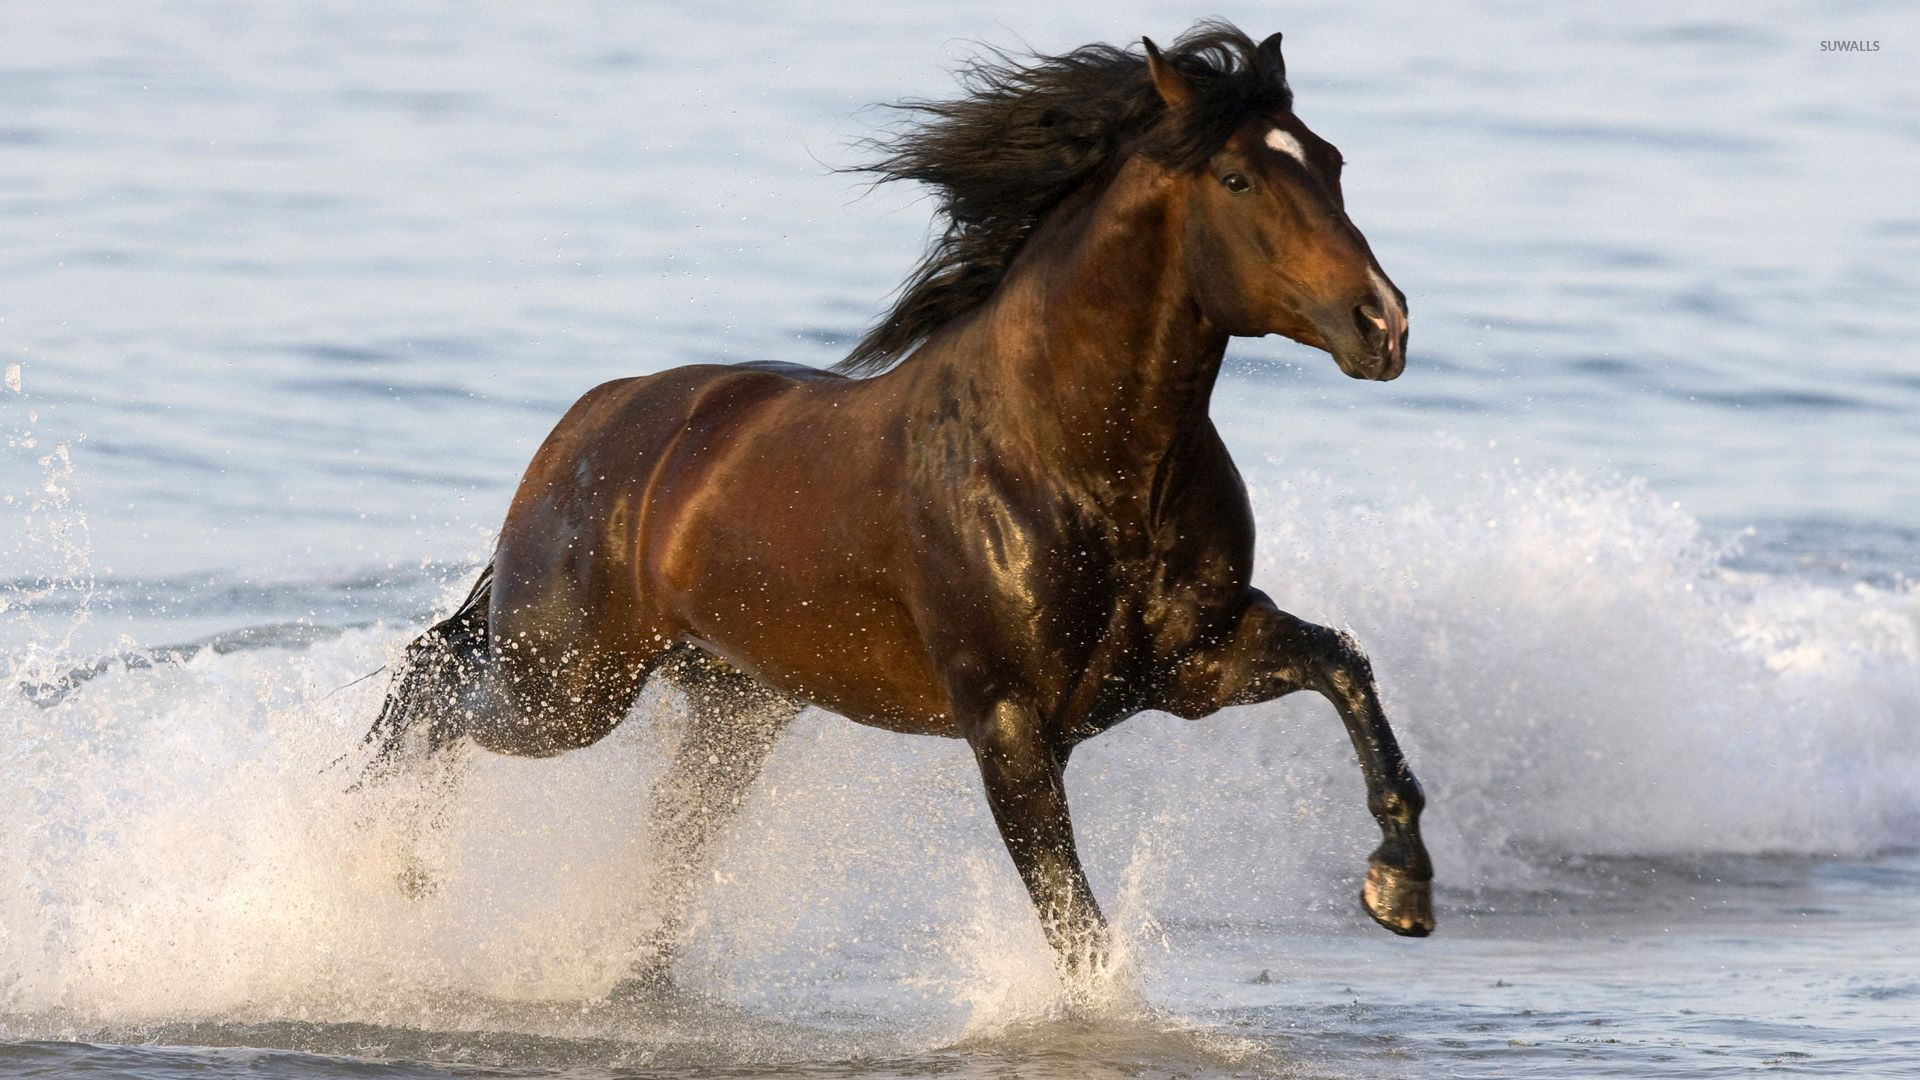 Brown Horse Running In The Sea Wallpaper Animal Wallpapers 53262